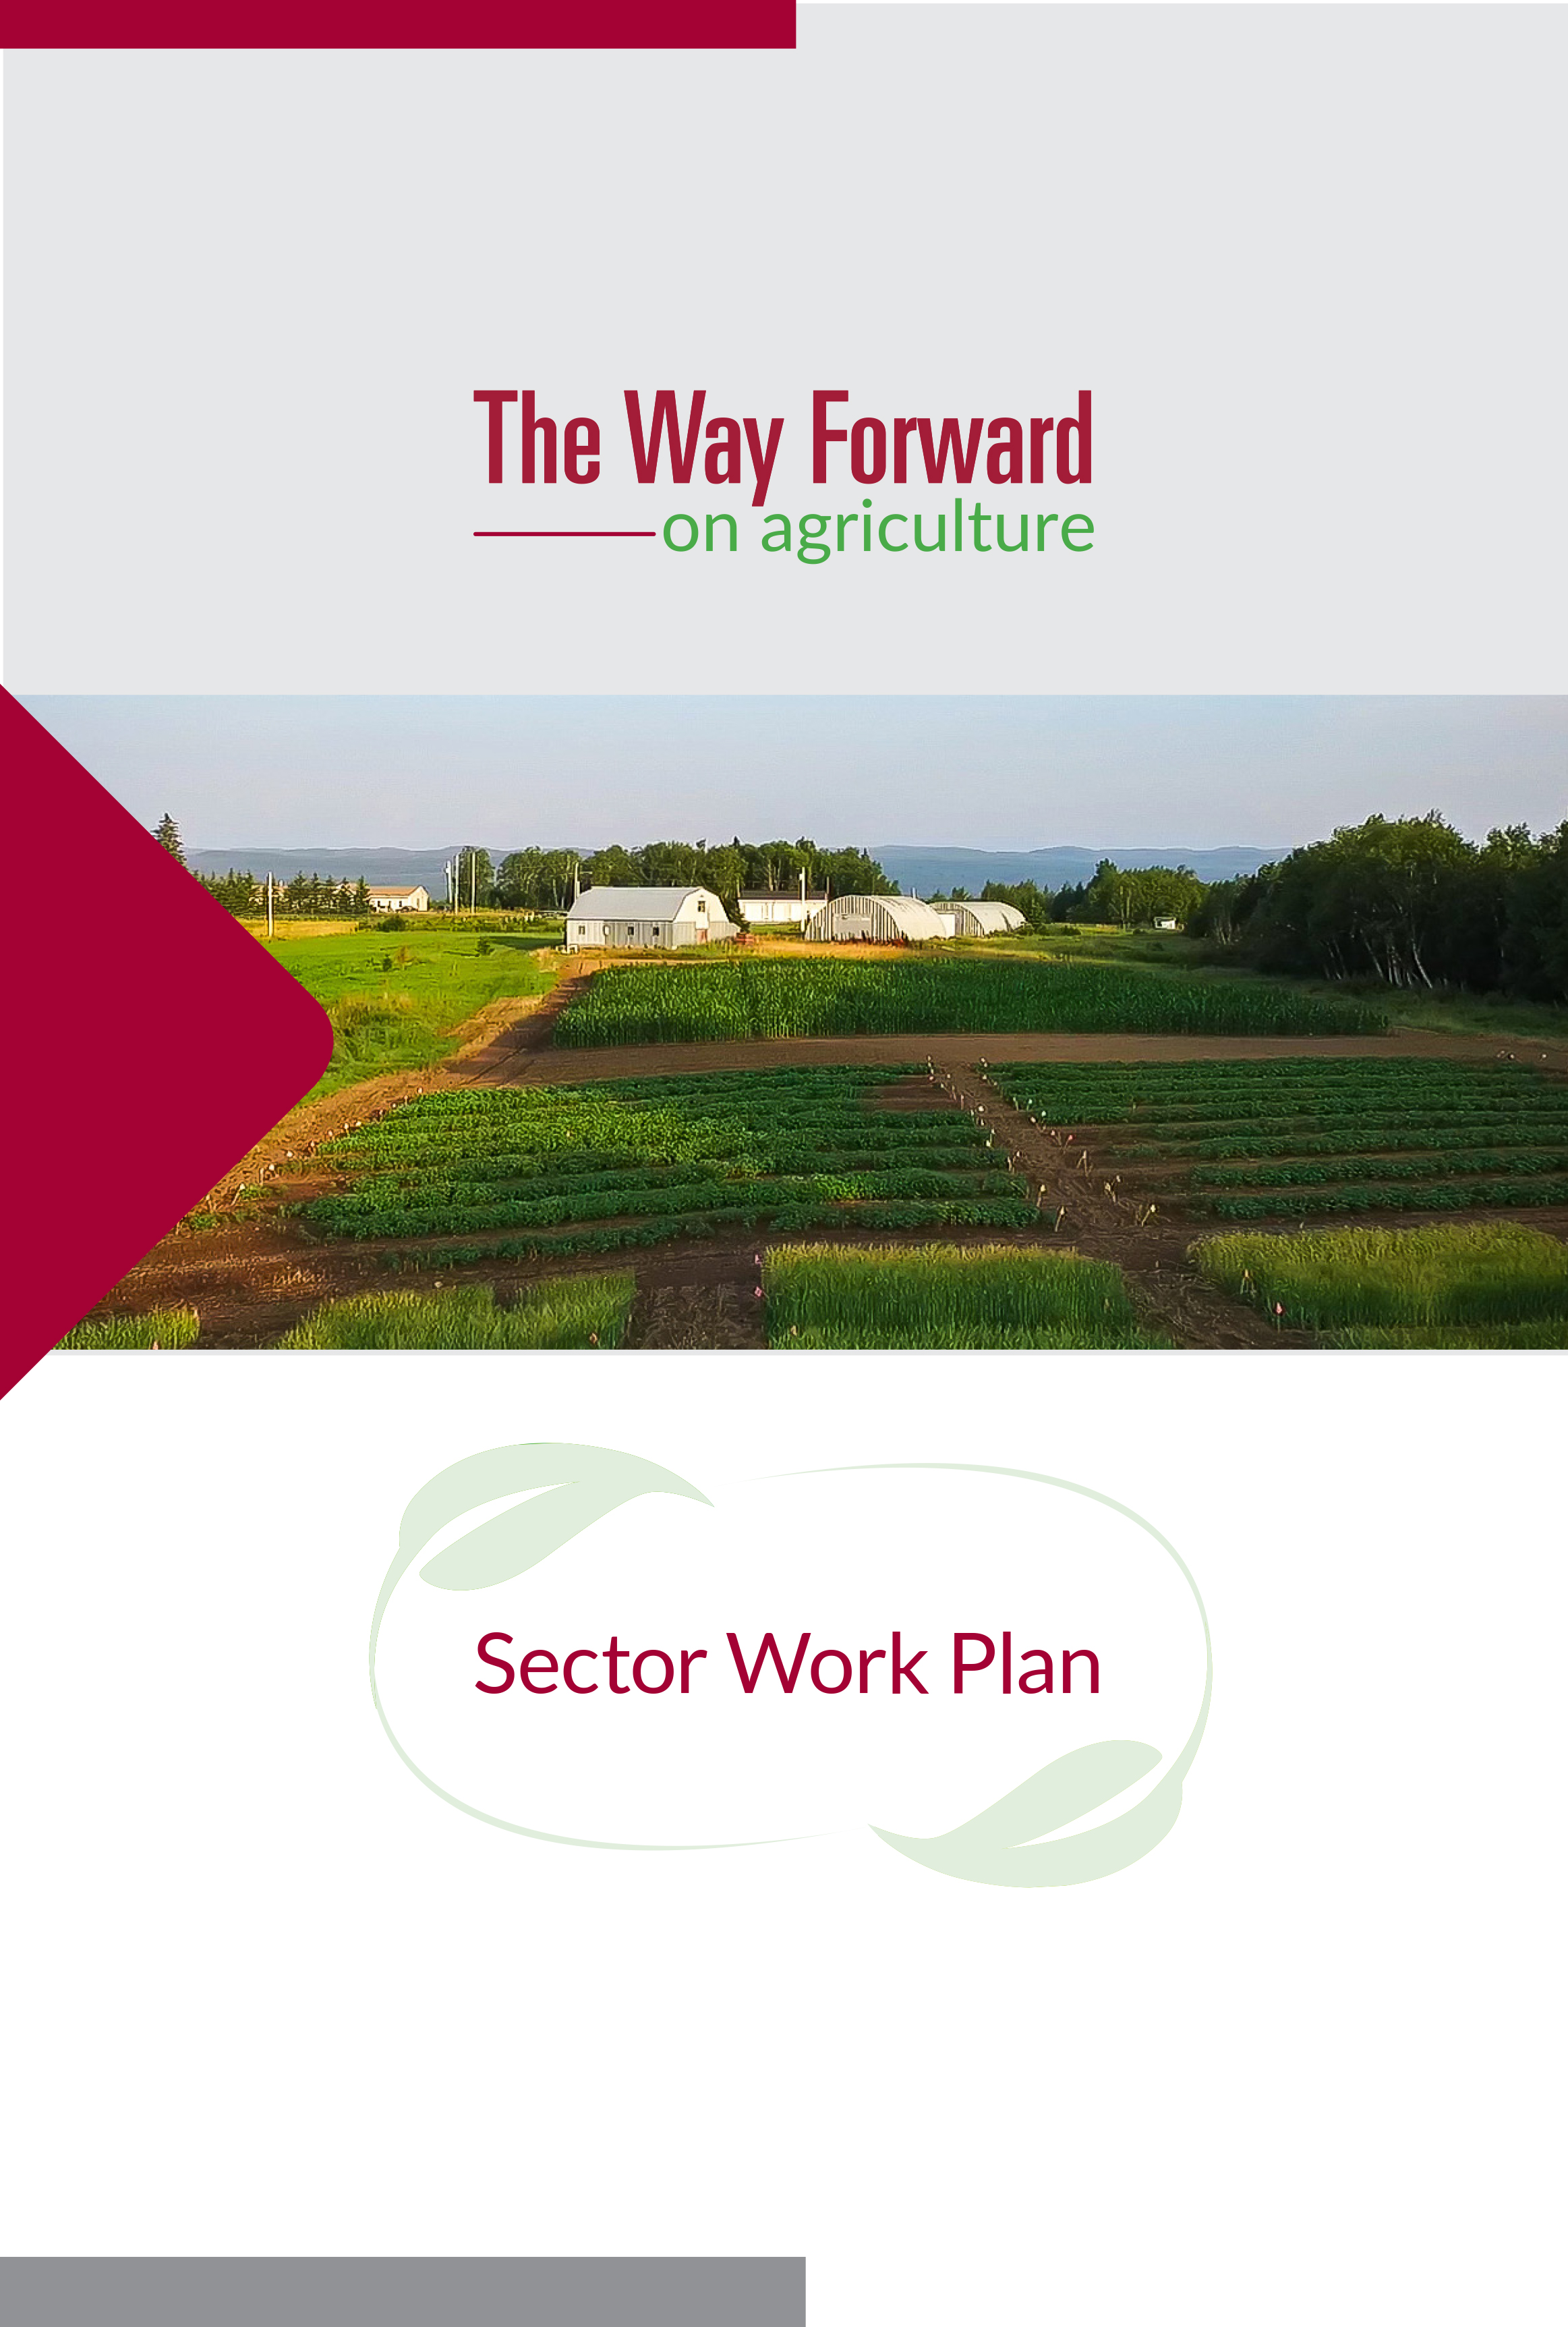 Click Cover Image to Read The Work Plan